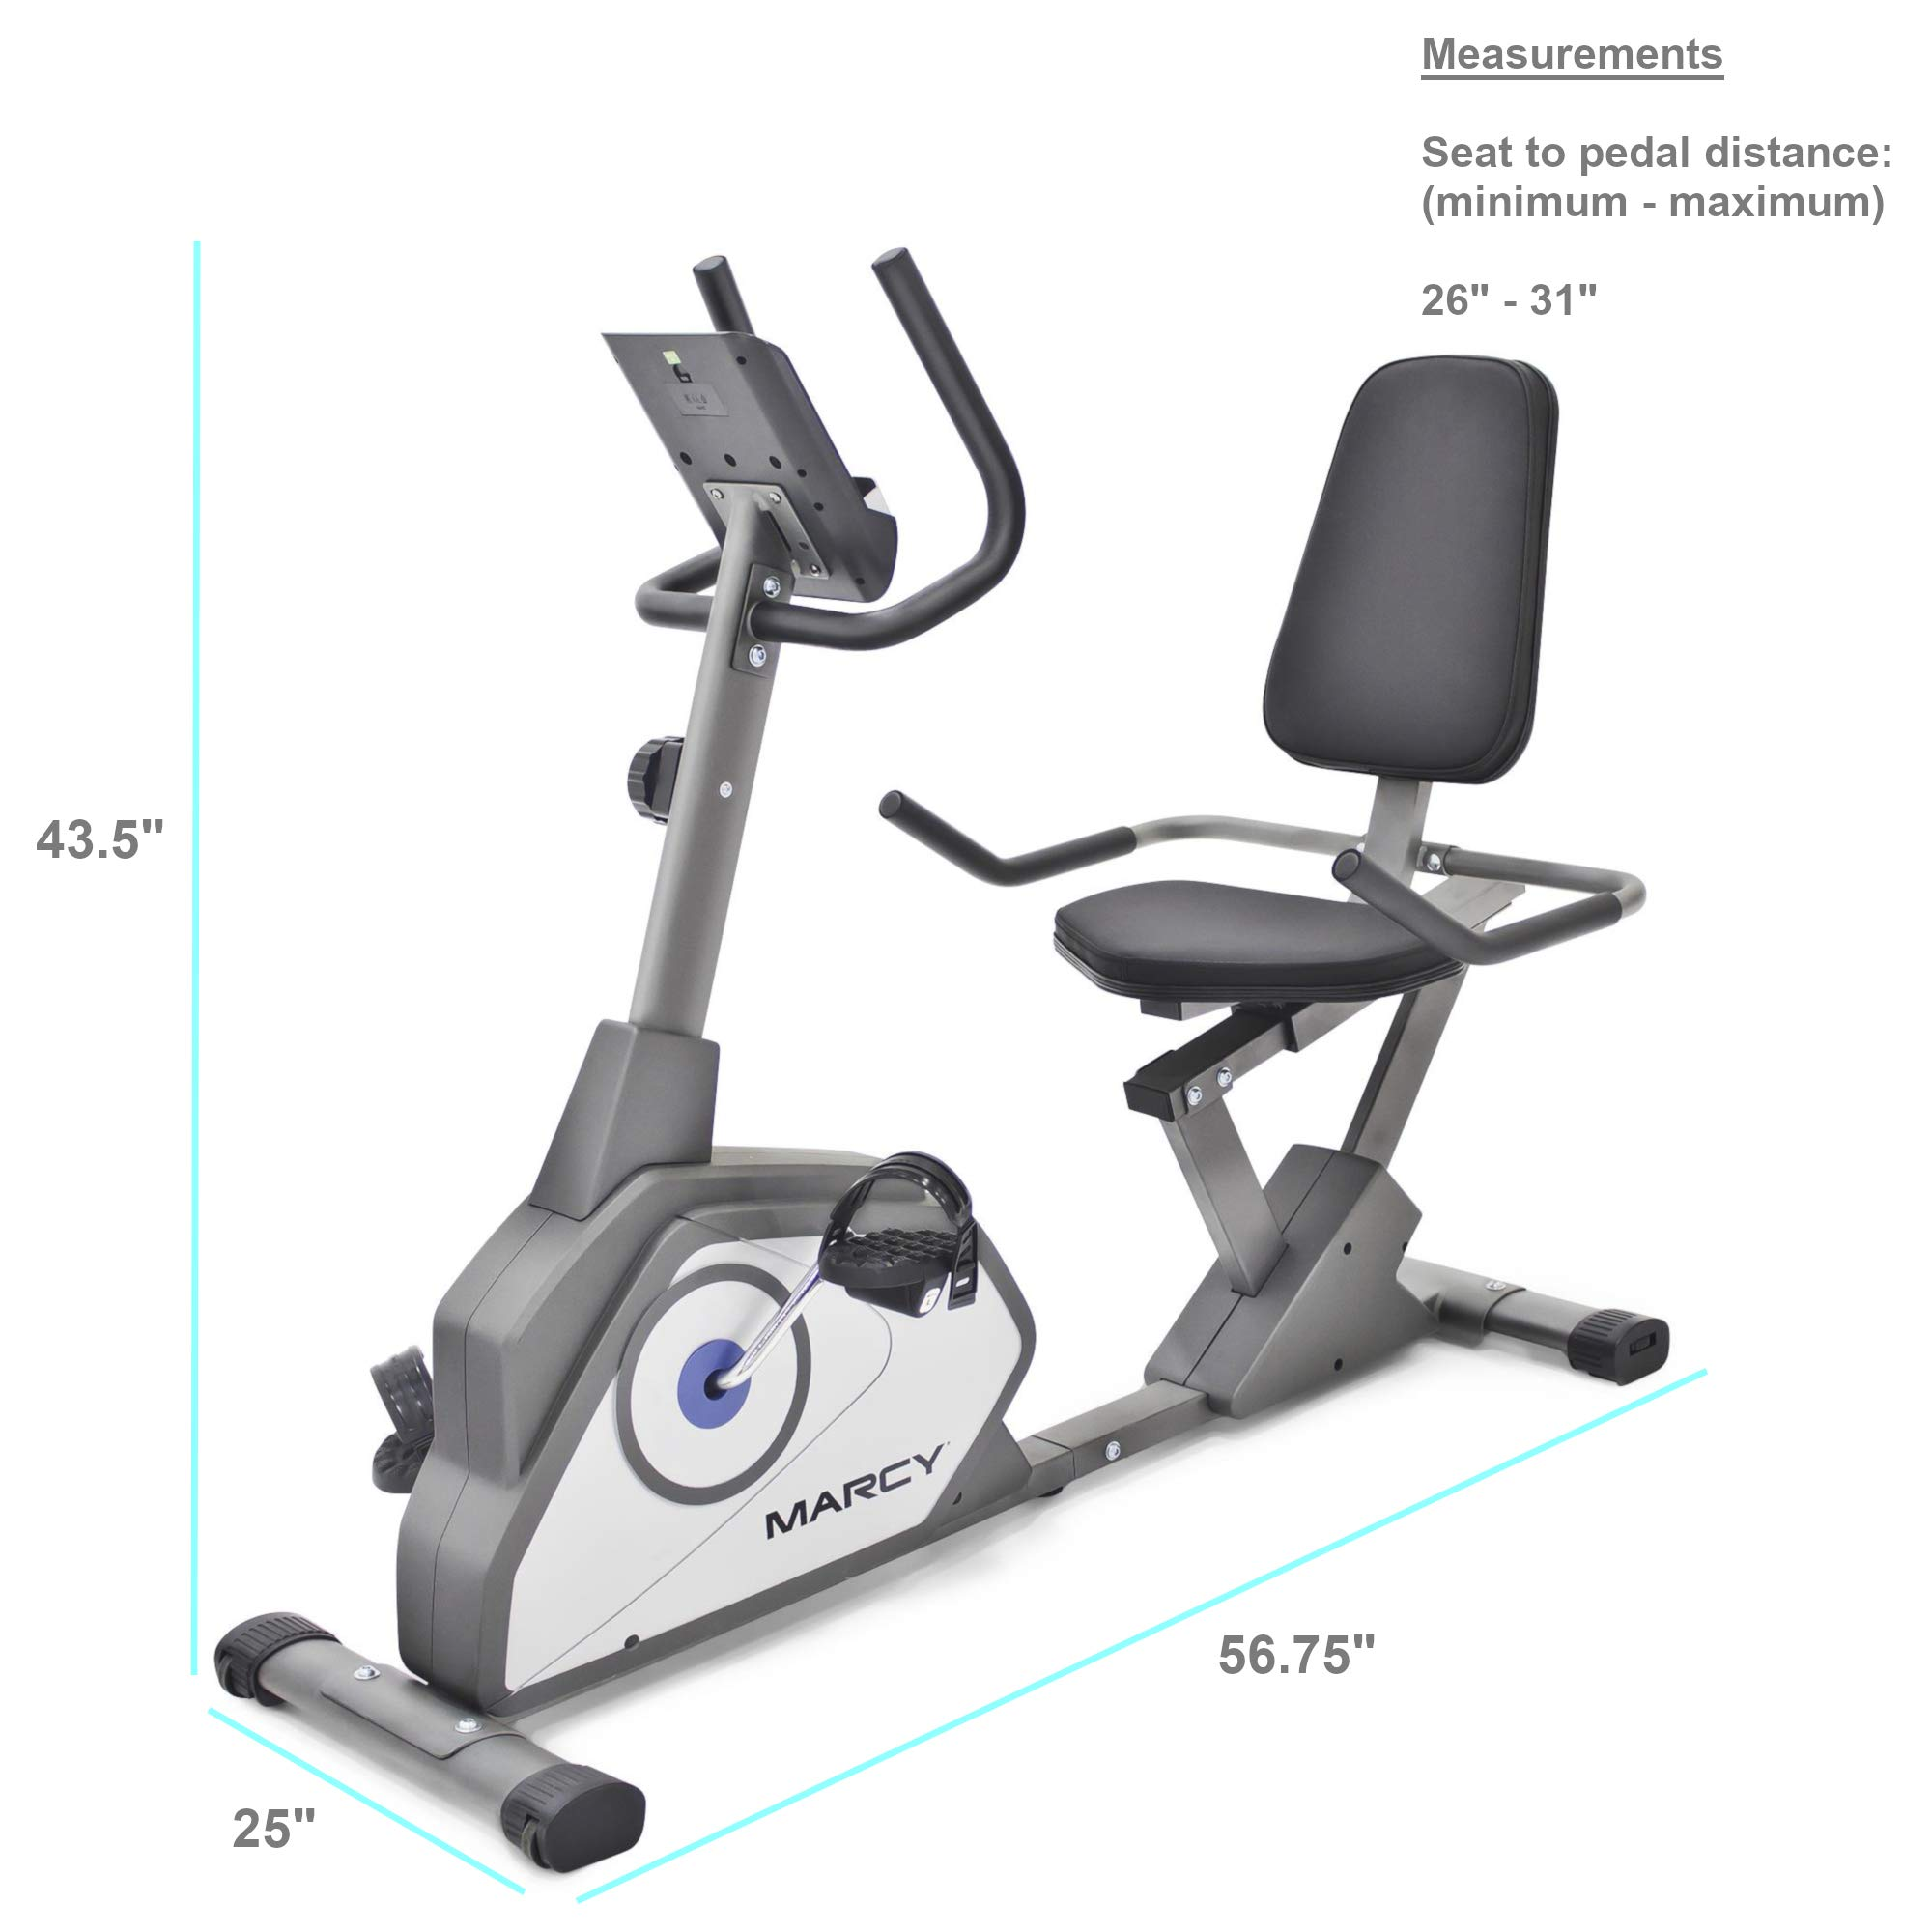 Marcy Magnetic Recumbent Exercise Bike with 8 Resistance Levels NS-40502R by Marcy (Image #2)